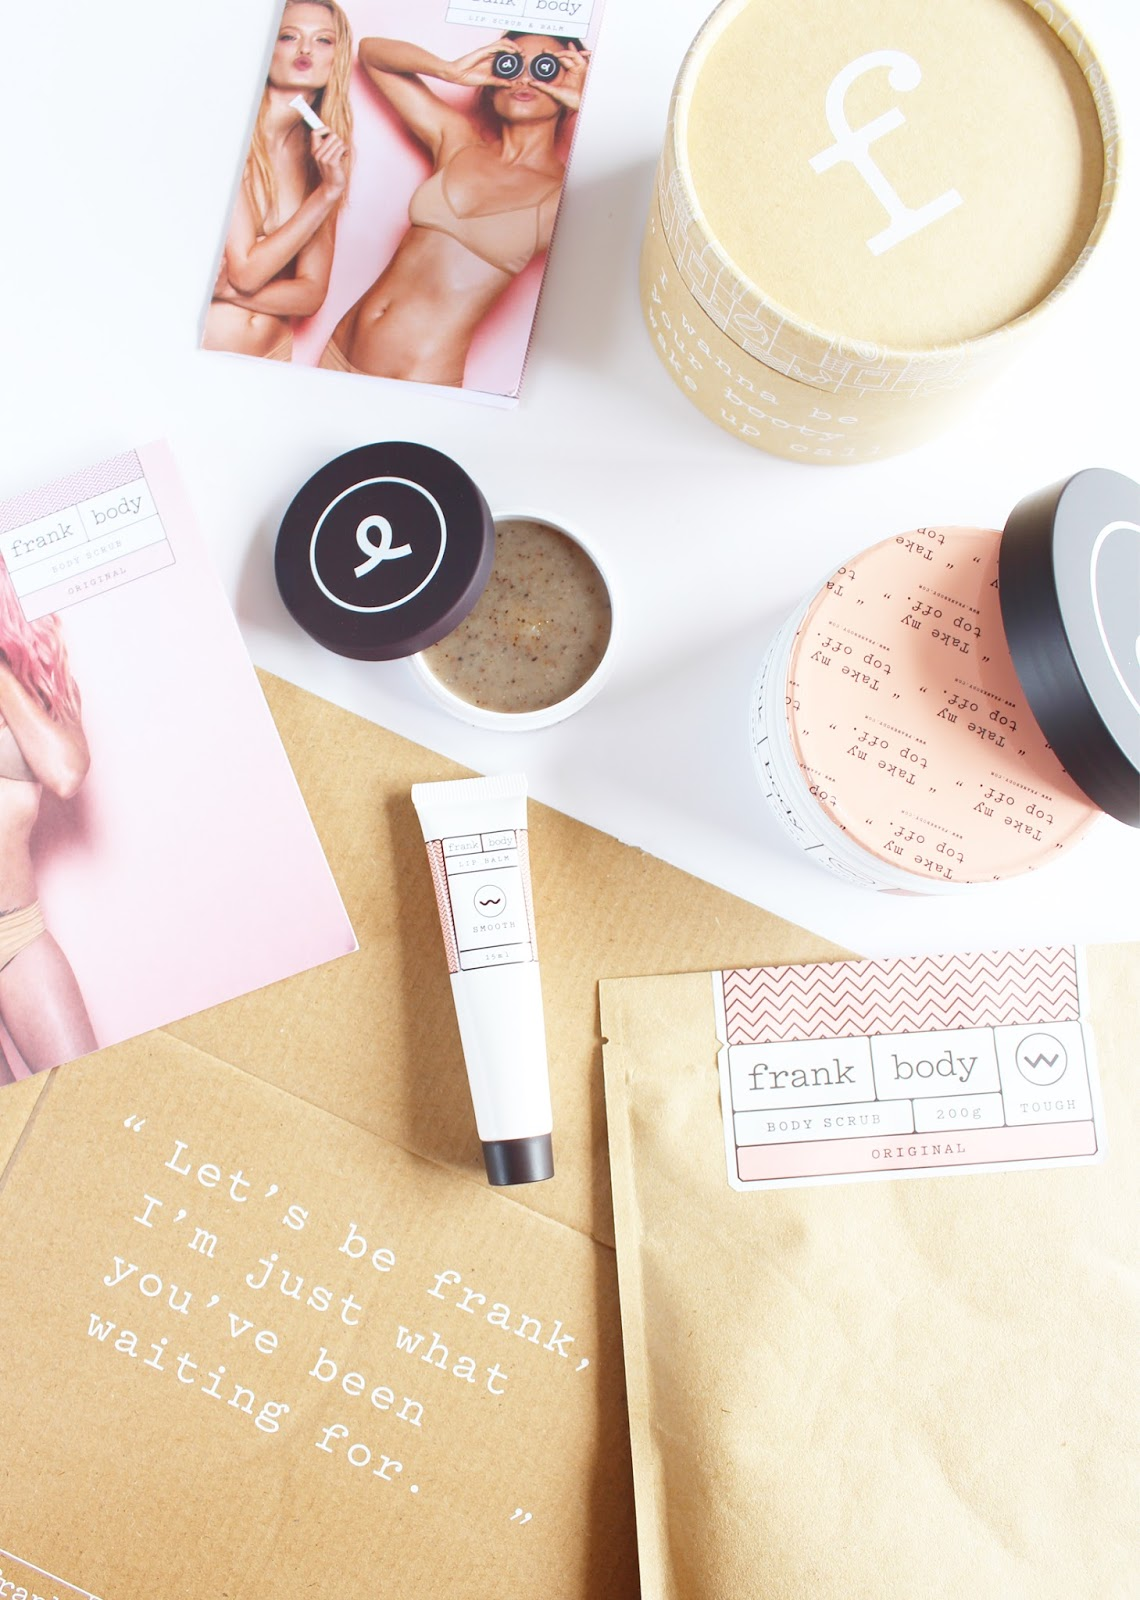 FRANK BODY | Product Overview + Reviews - Coffee Scrub, Body Cream, Lip Balm, Lip Scrub - CassandraMyee